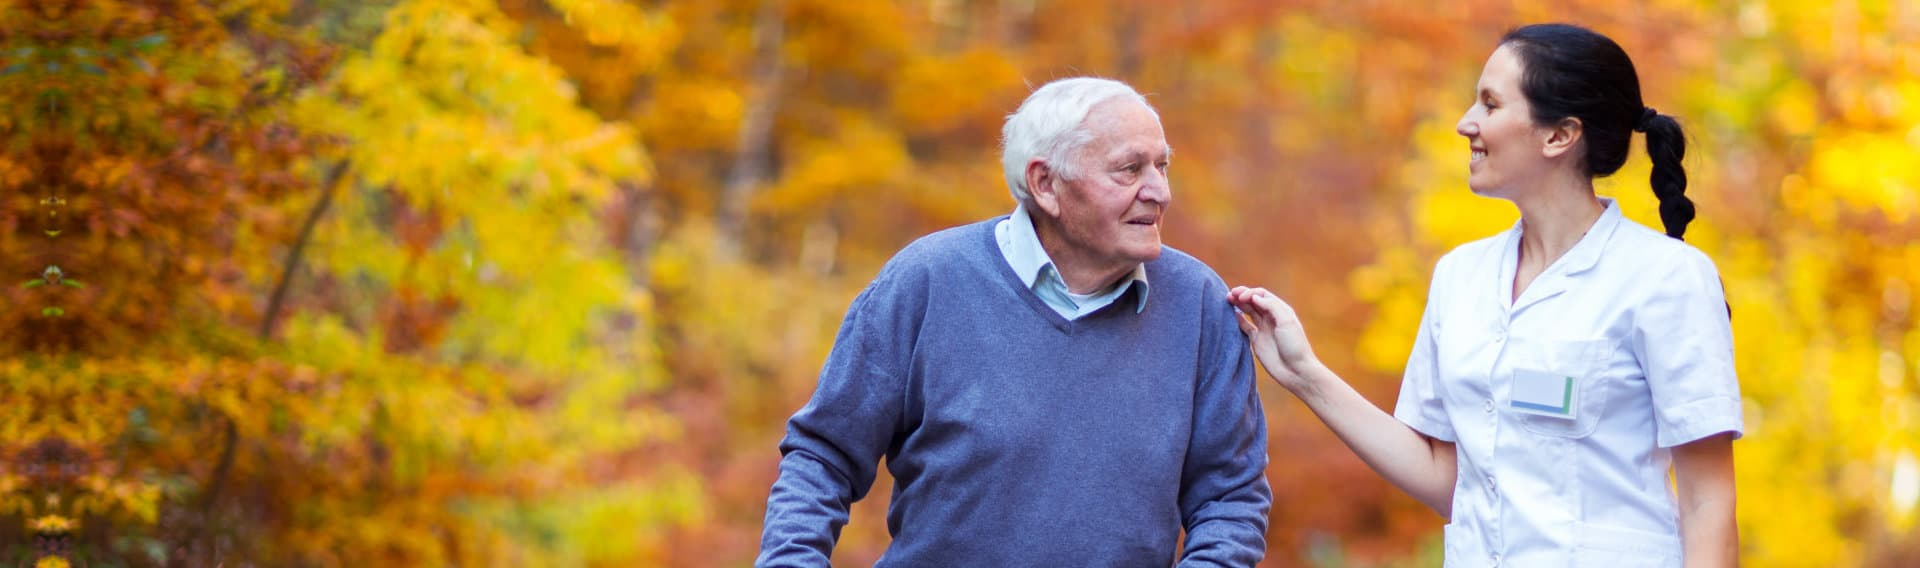 portrait of a man and a caregiver walking